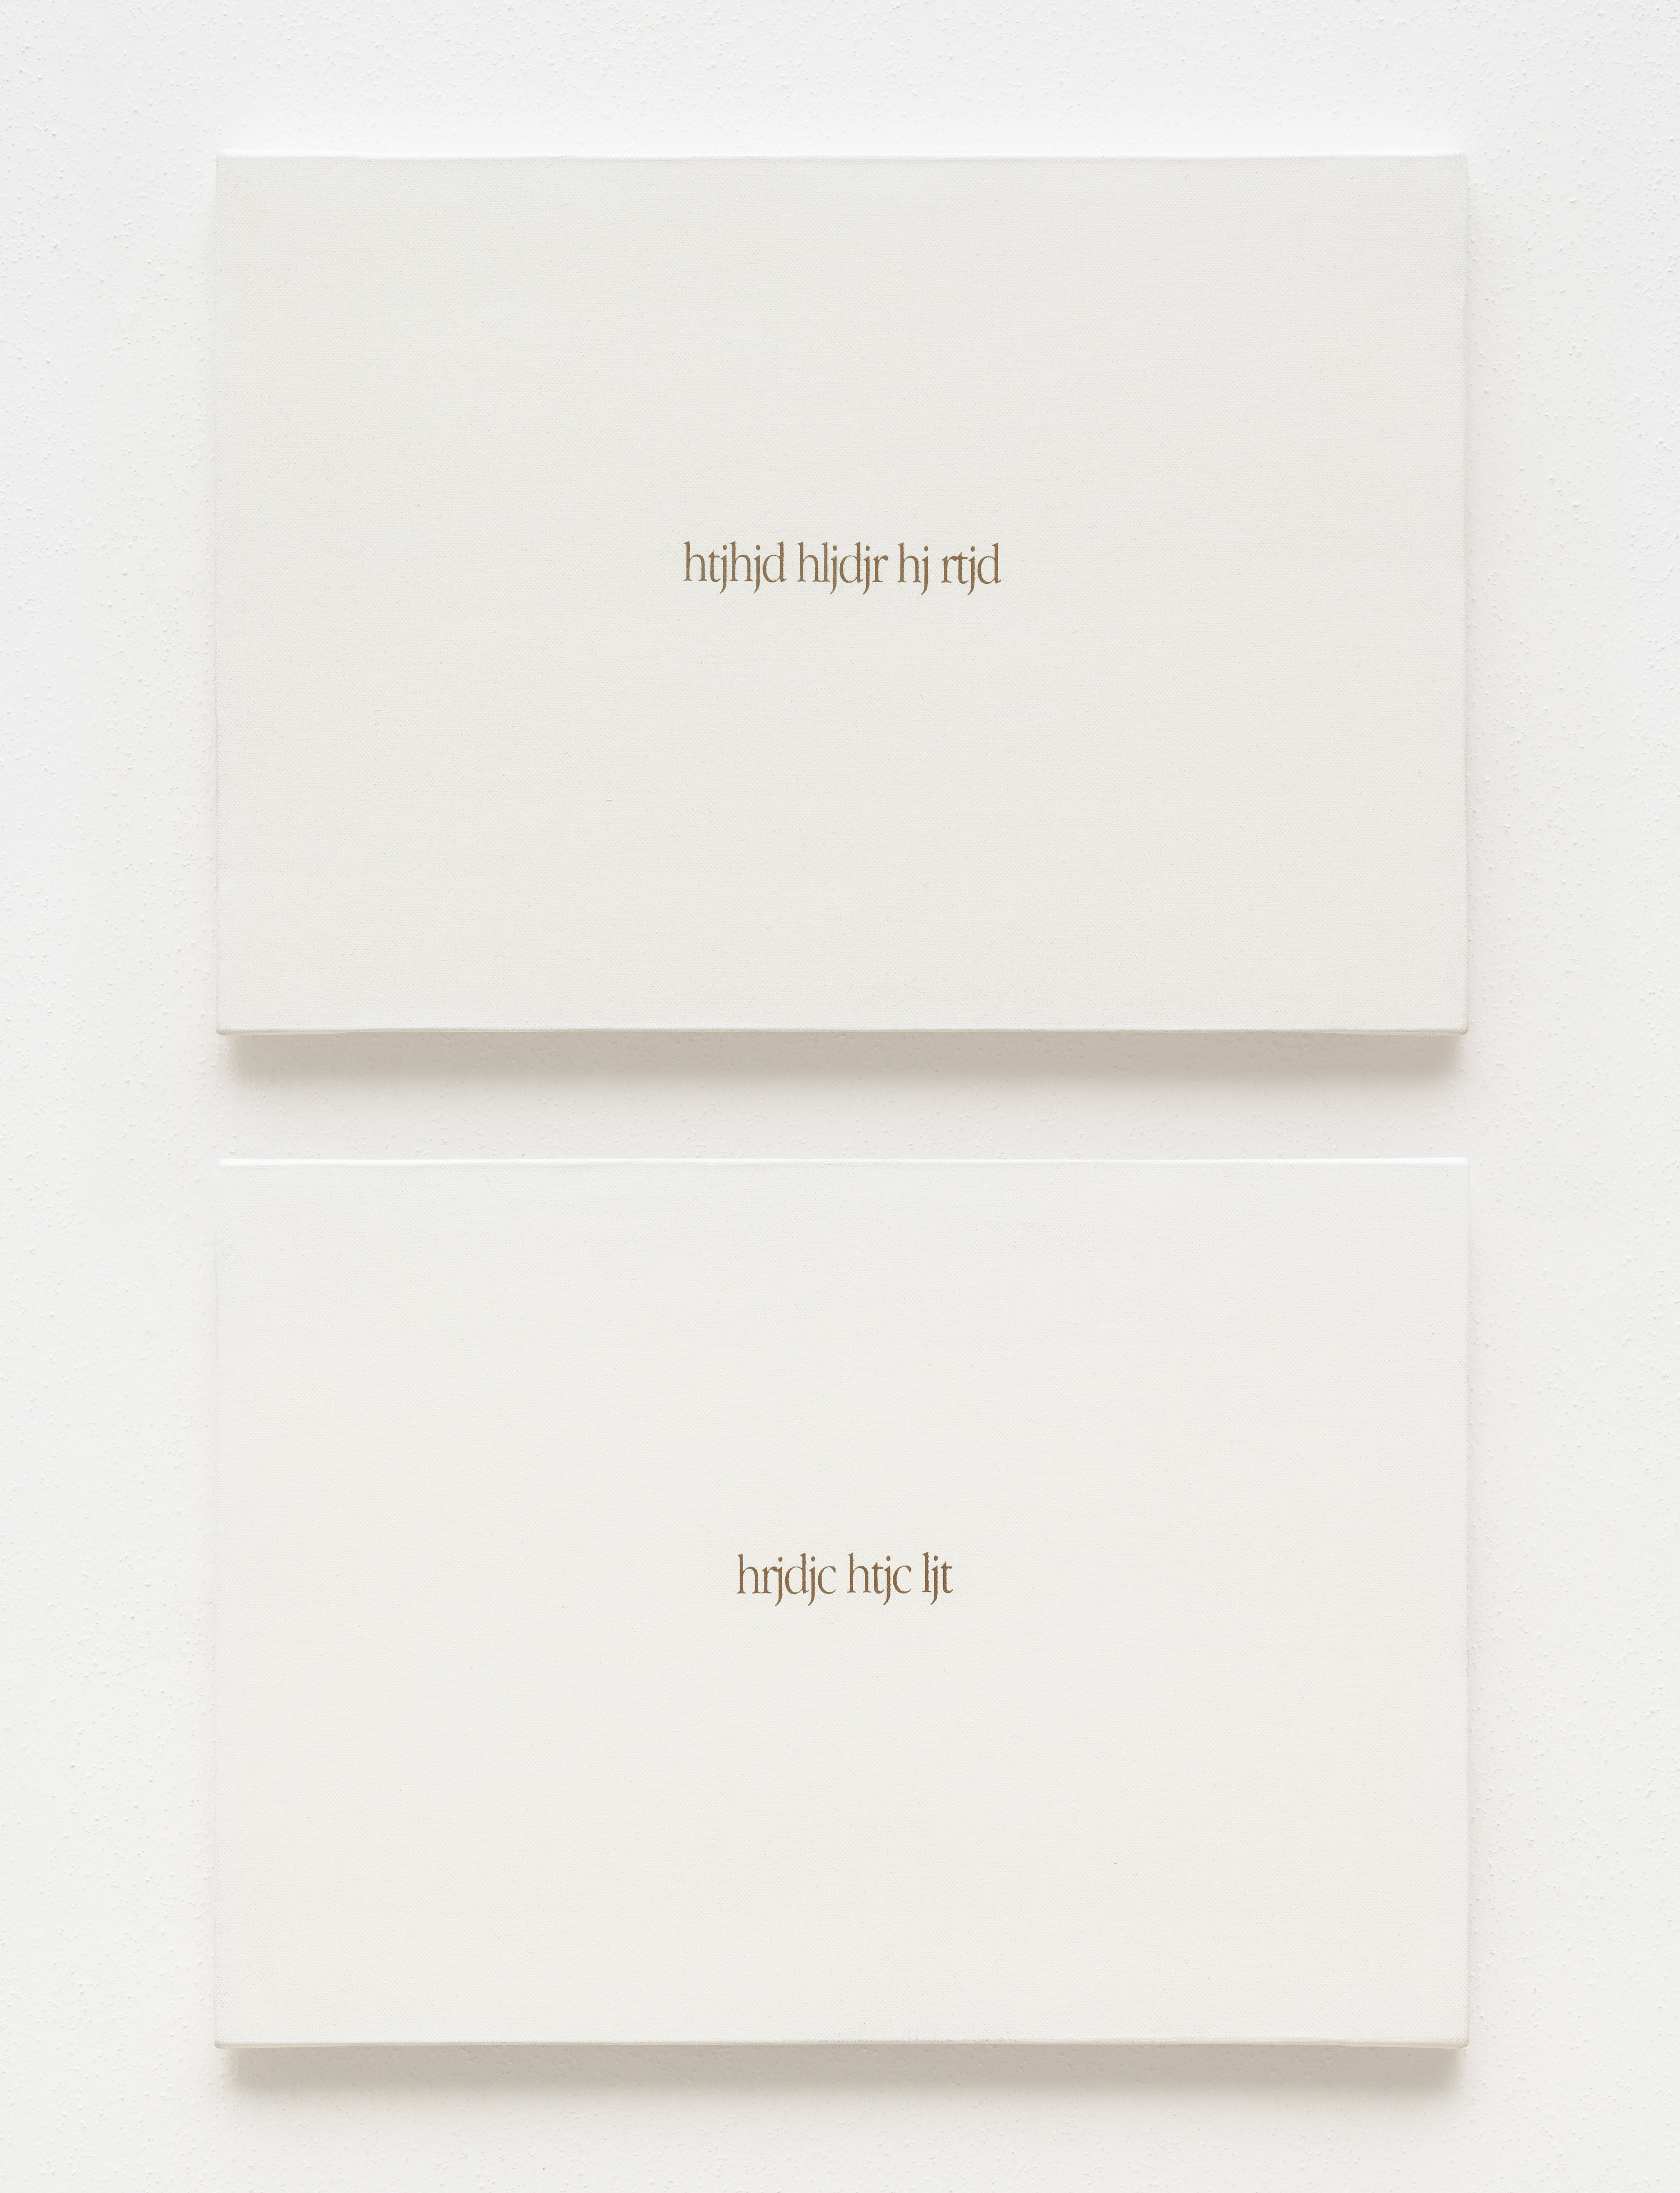 Global Writings, La lingua ritrovata, poesia minima, 19-2-04, digital writing and silkscreen print on canvas, diptych, 30.5 x 43.5 cm each (61 x 43.5 cm overall), 2004